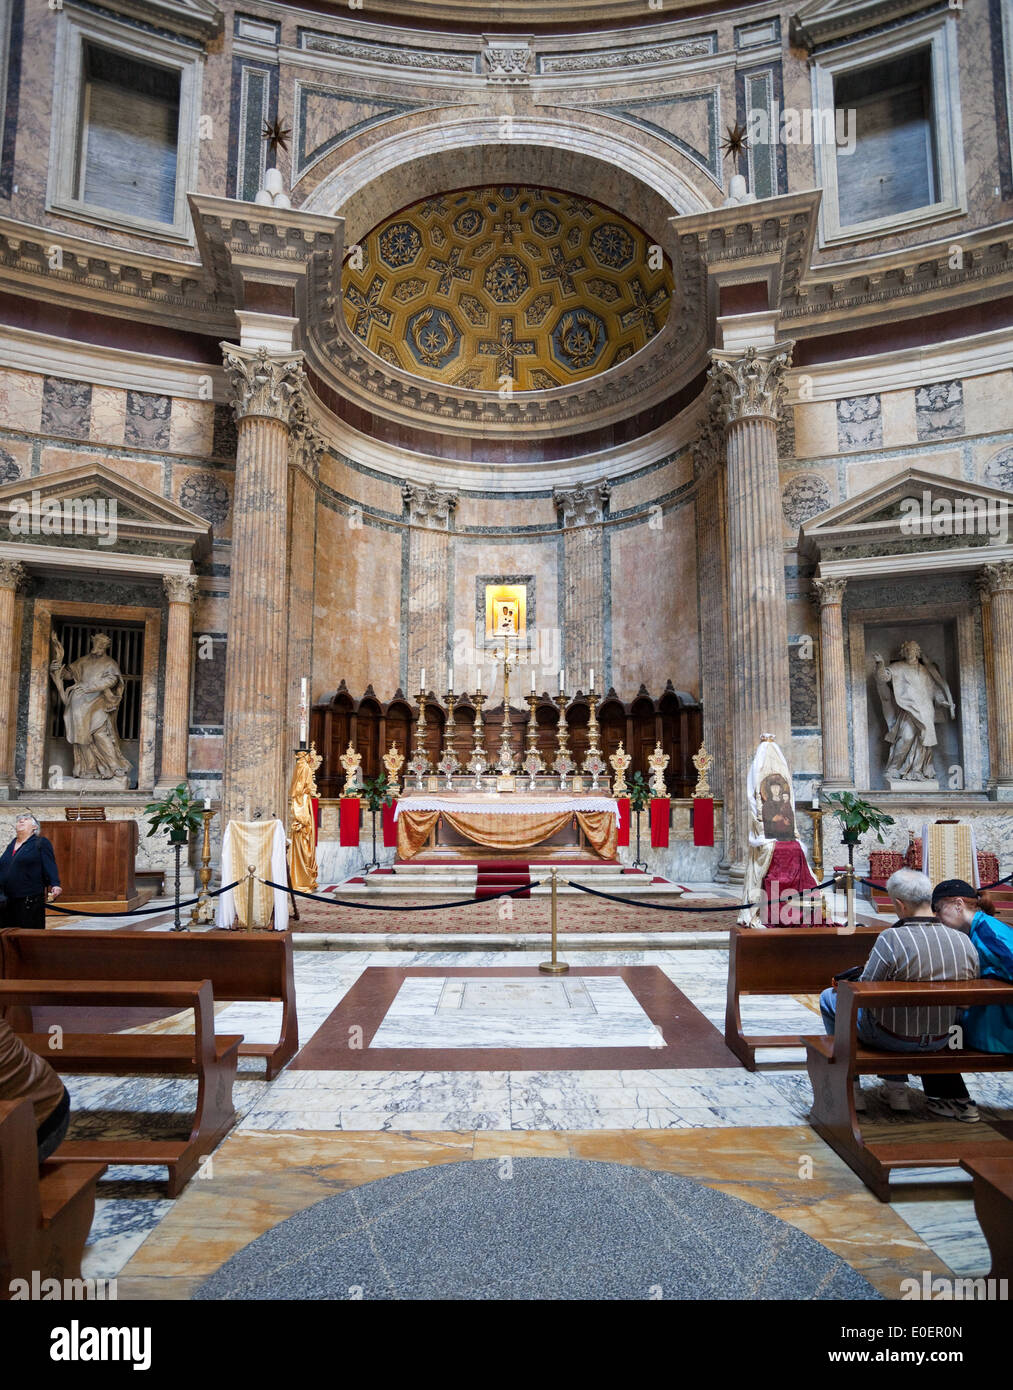 Altar im Pantheon, Rom, Italien - Altar in the Pantheon, Rome, Italy - Stock Image